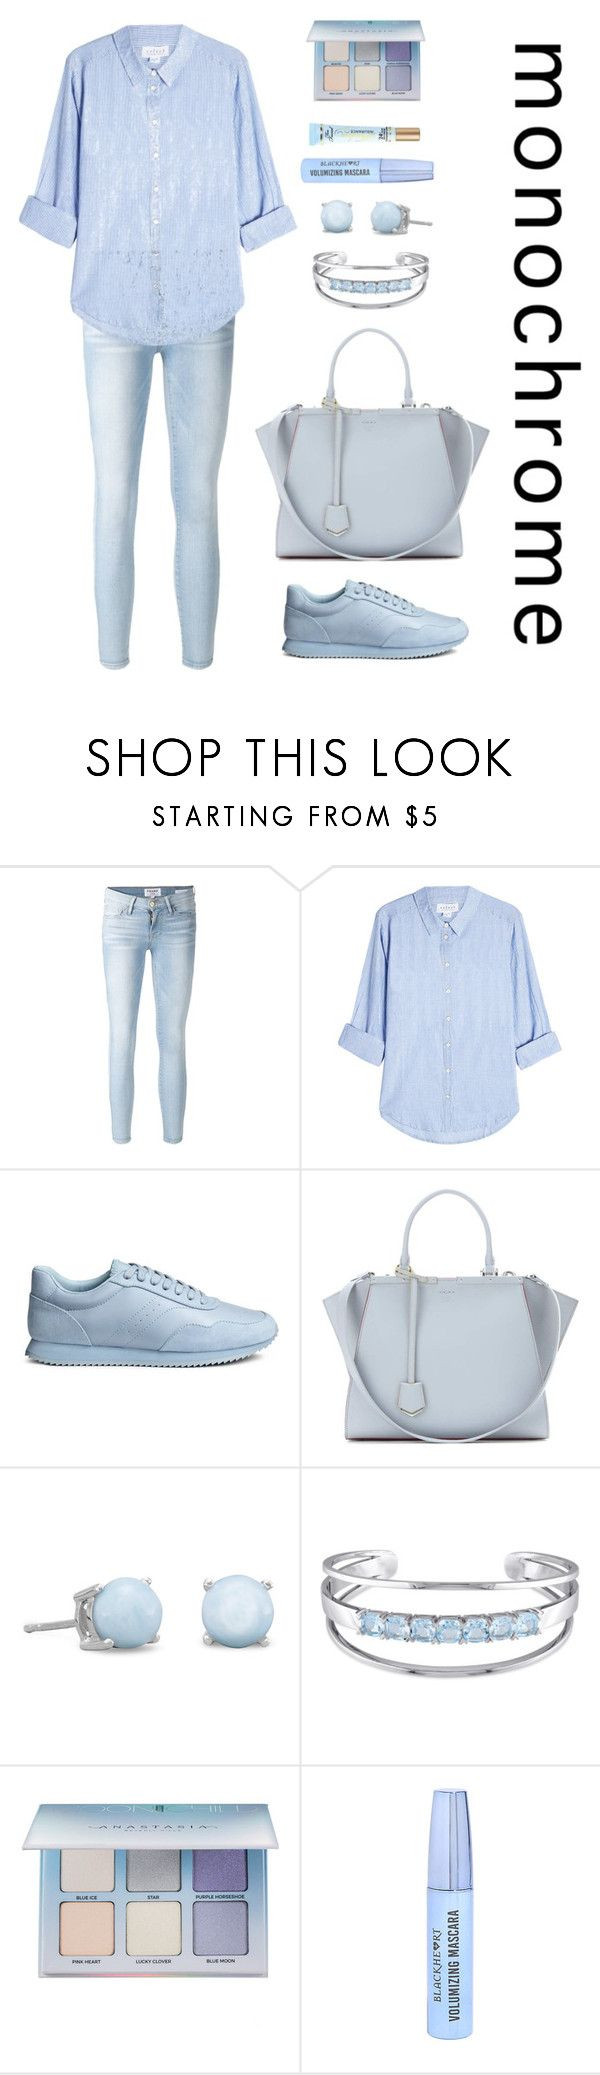 """One Color, Head to Toe"" by vale14m ❤ liked on Polyvore featuring Frame, Velvet, Fendi, Catherine Malandrino, Anastasia Beverly Hills, Too Faced Cosmetics, monochrome and ice"